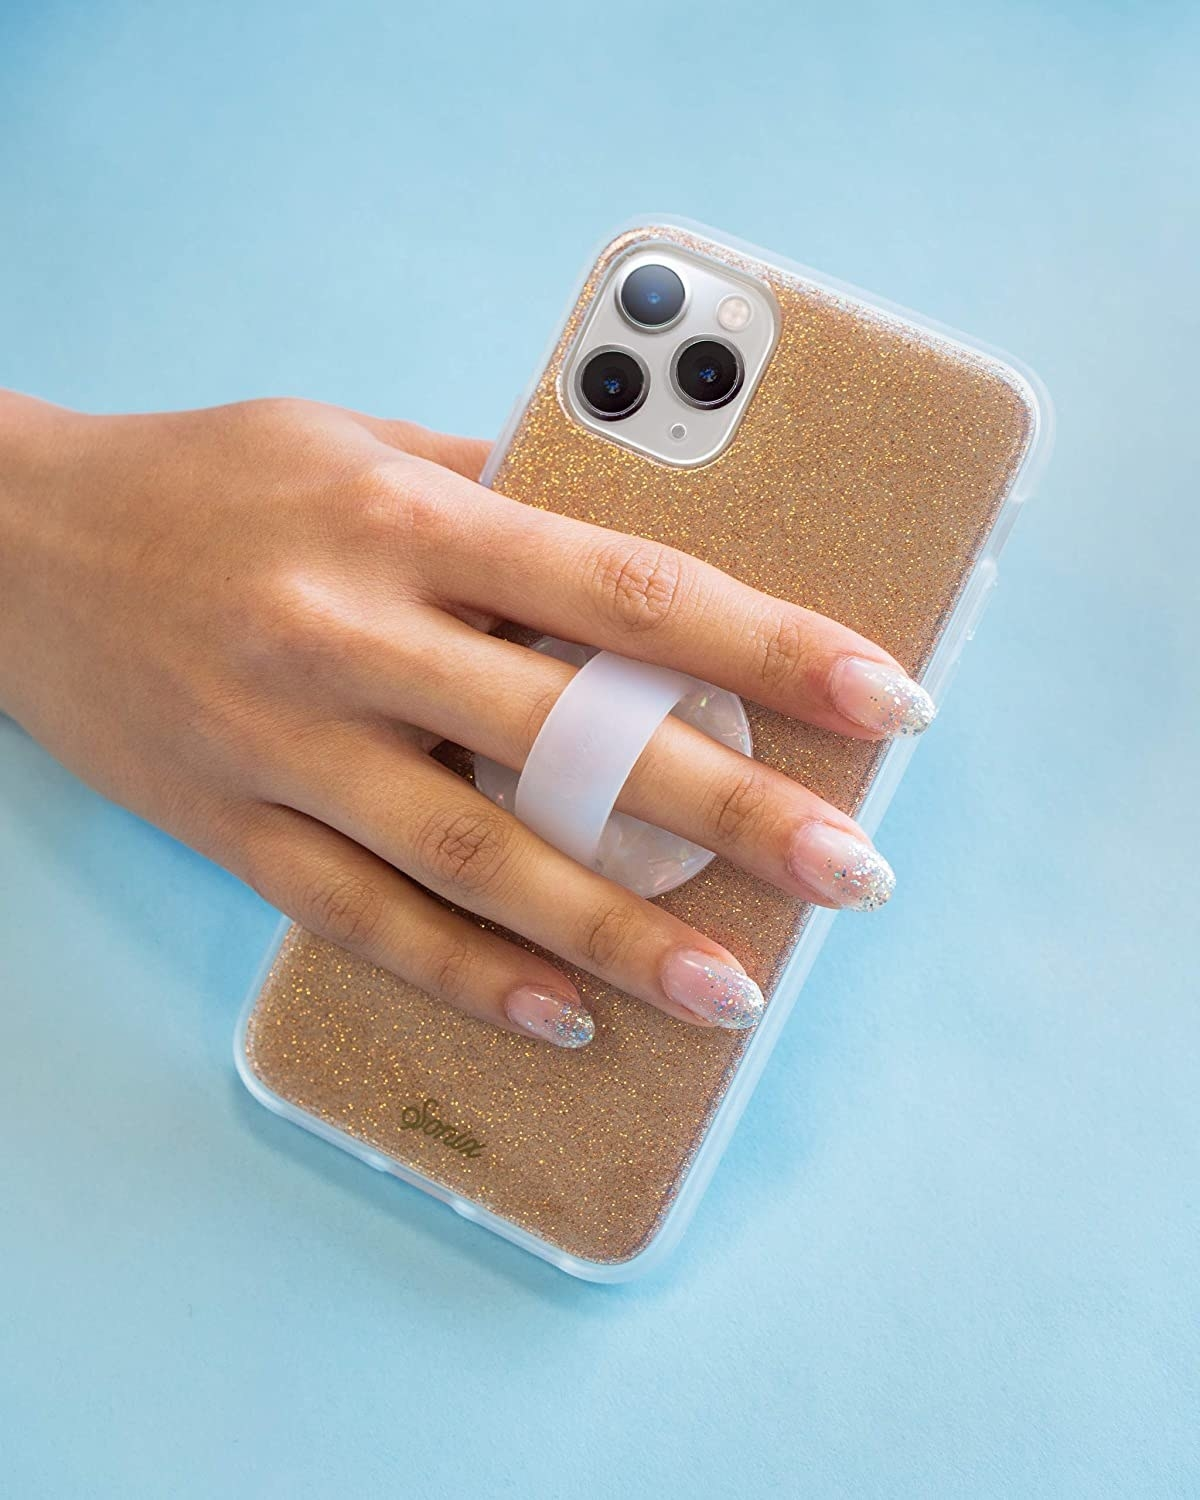 A person holding their phone using the phone ring